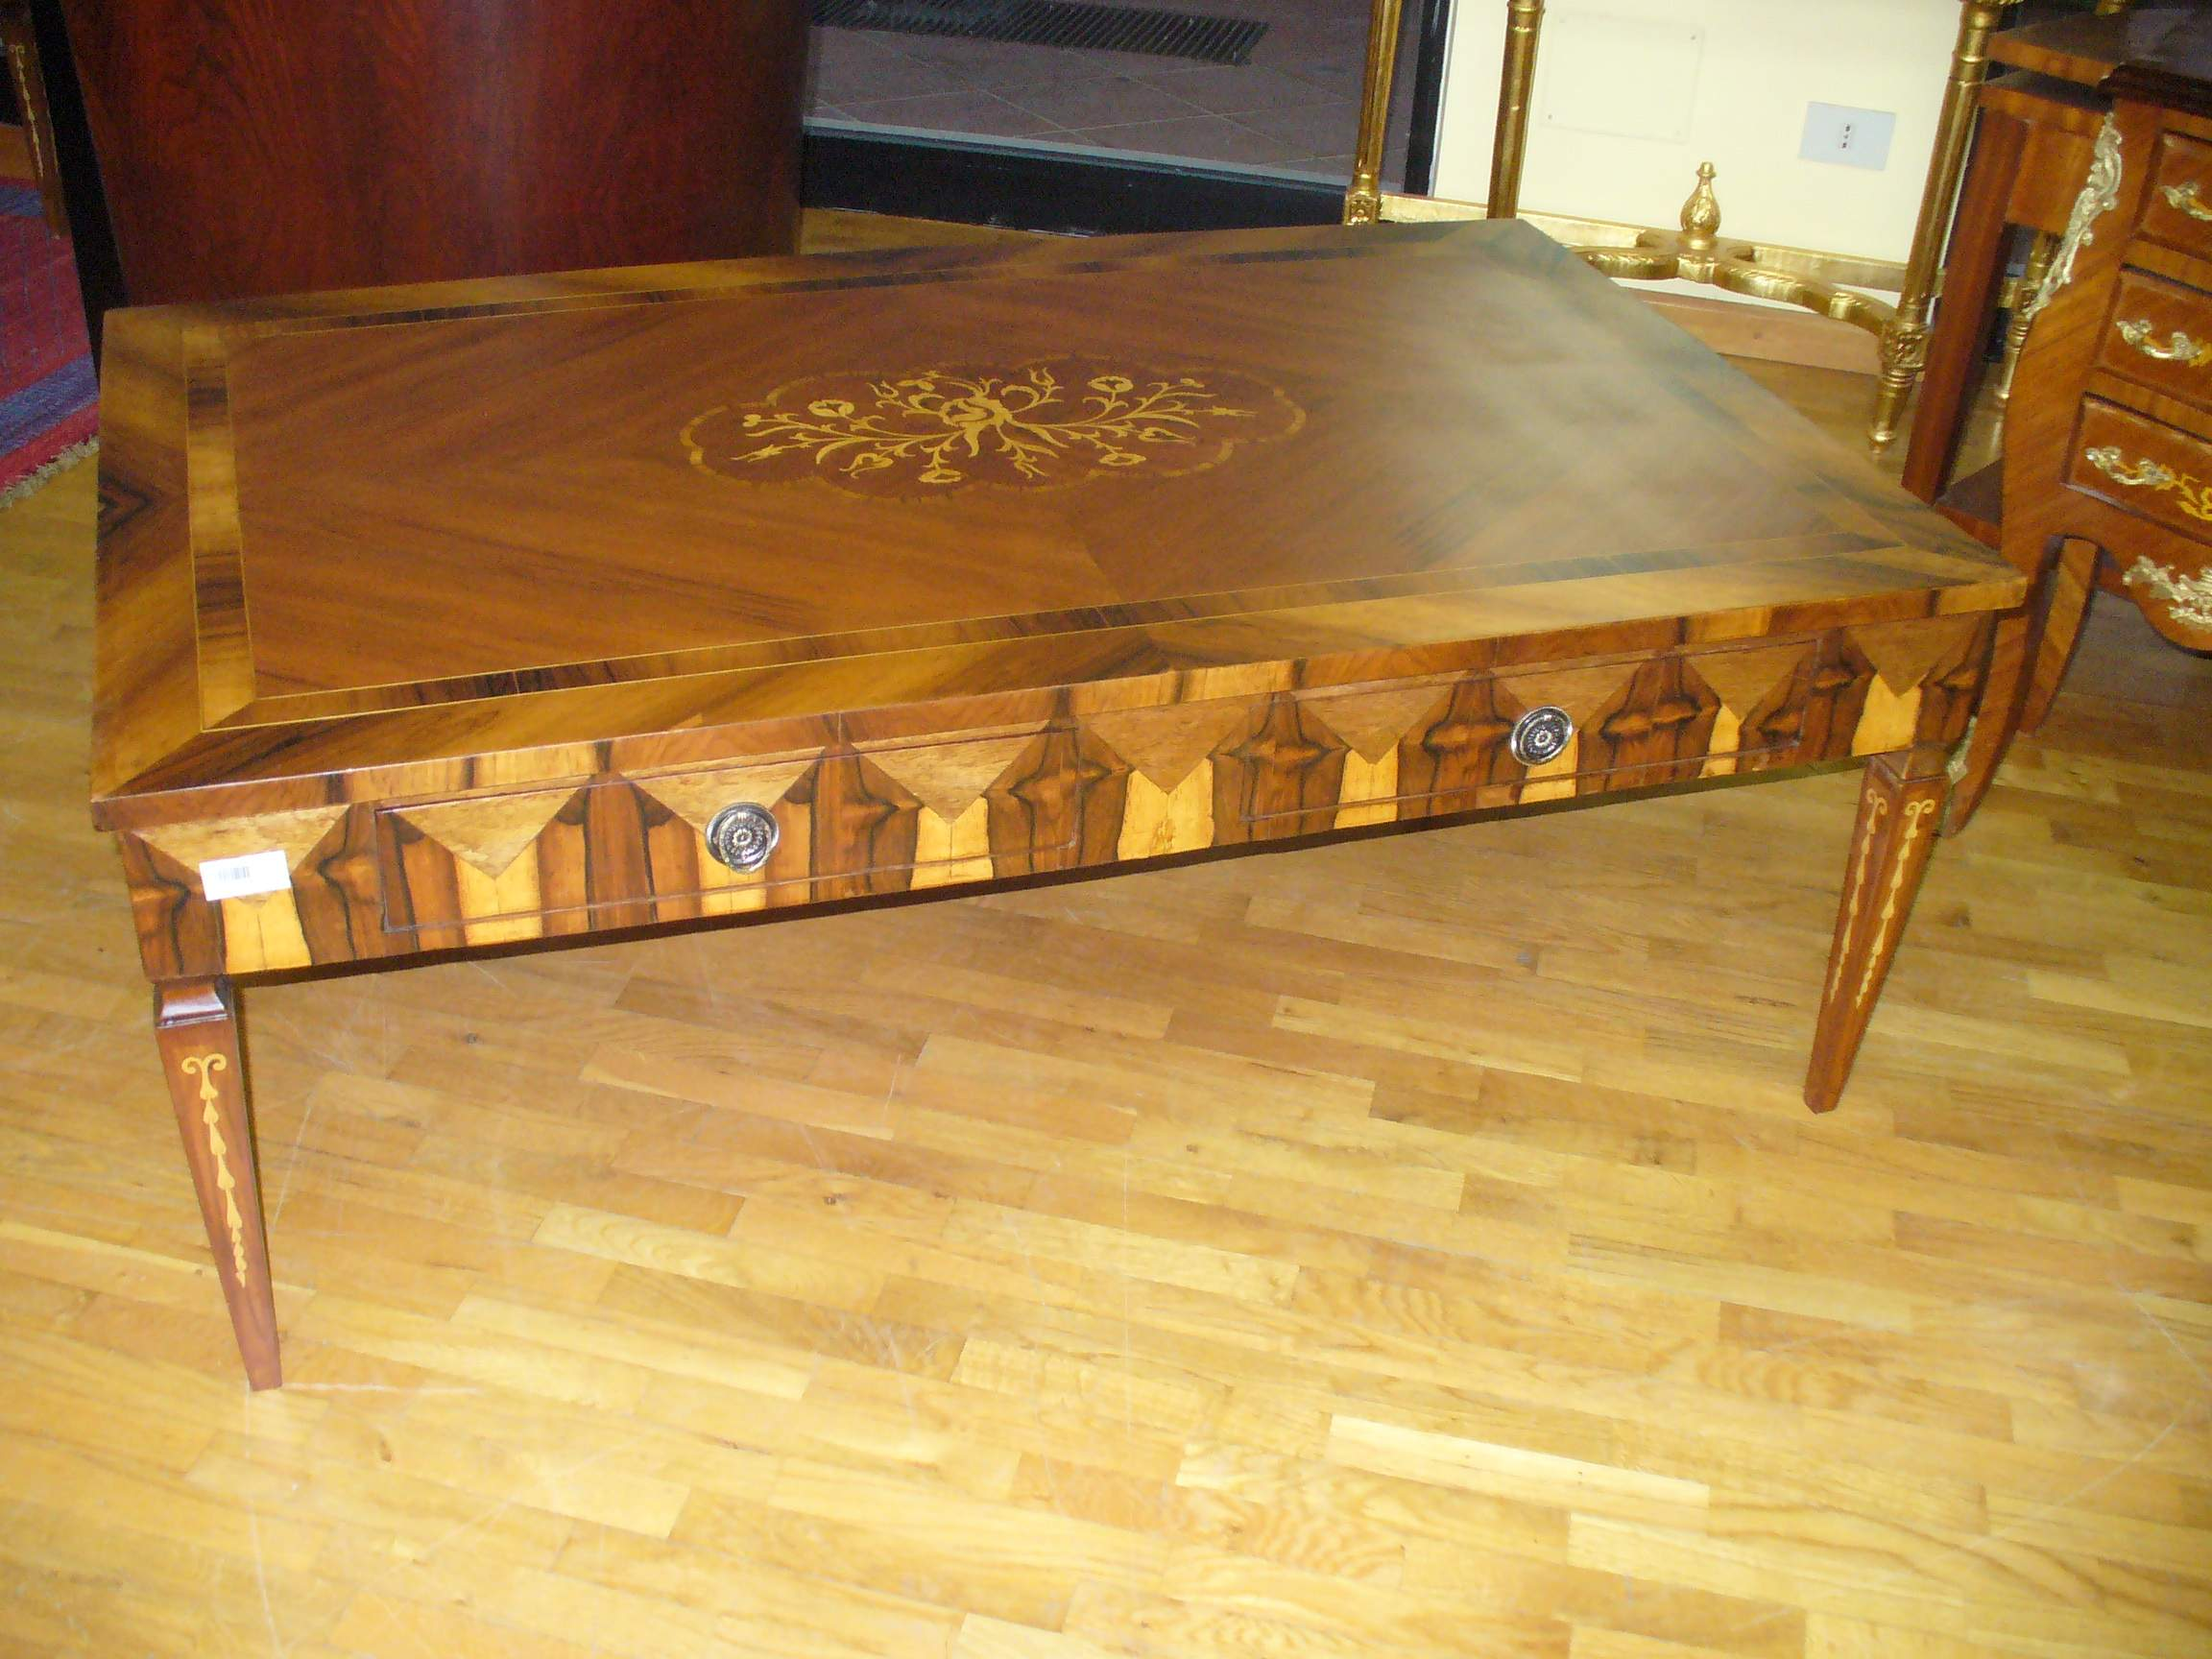 Italian style coffee table with beautiful marquetry patterns veneers Tuscan style coffee table